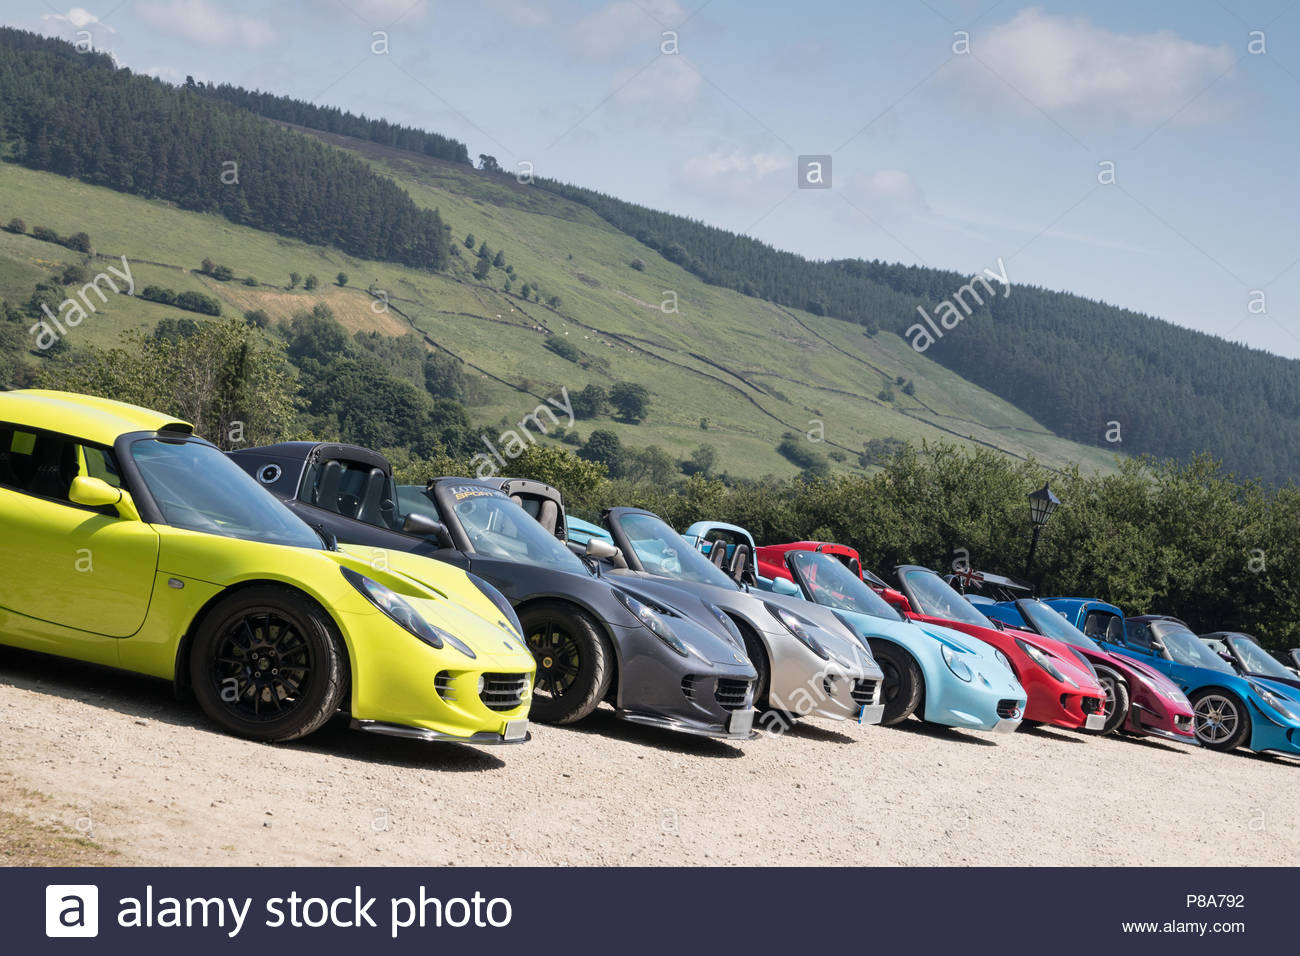 A row of Porsche sports cars in the North York Moors - Stock Image